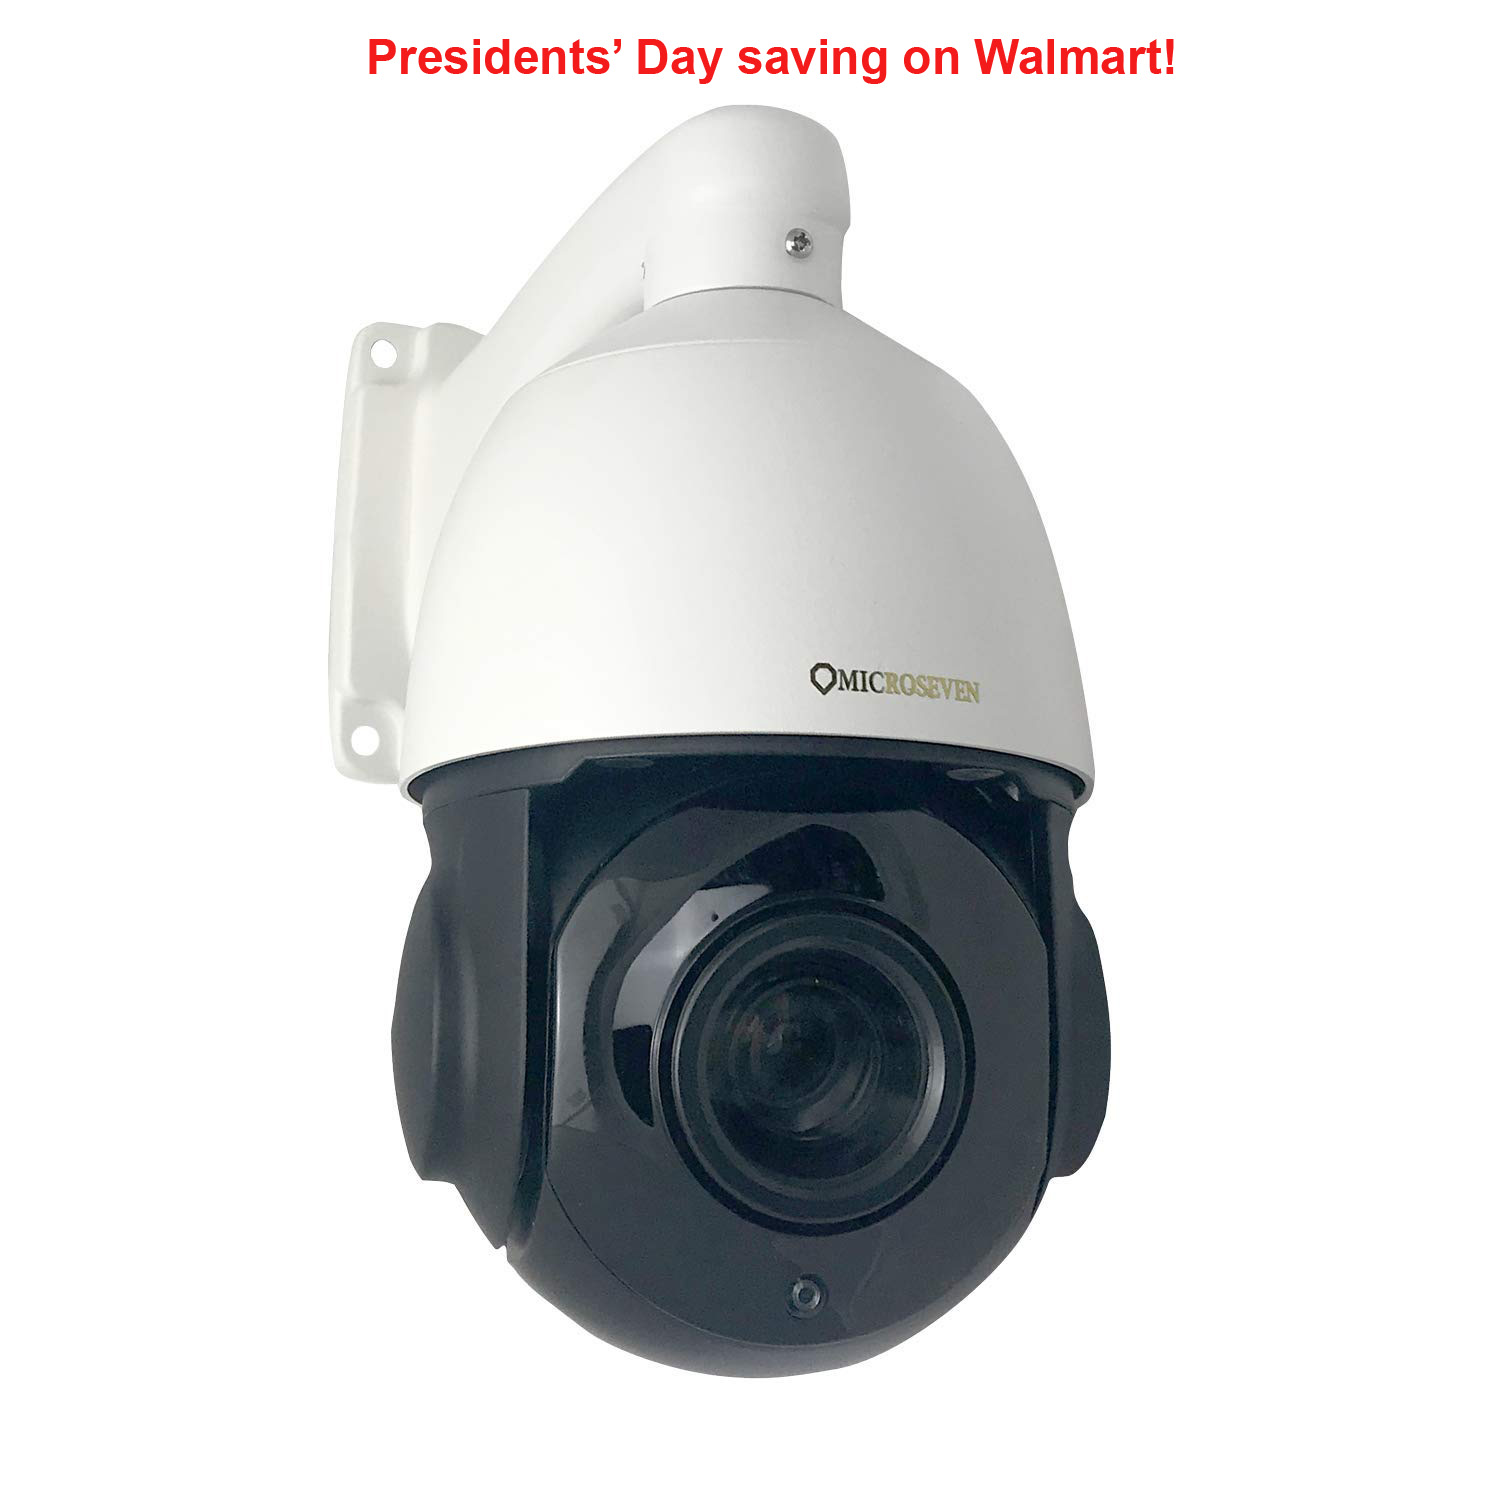 Microseven 1080P / 30fps HD 20X Optical Zoom Pan Tilt Speed Dome IP Camera Built-in WiFi &POE+ Outdoor PTZ Camera, Works with Alexa, Night Vision,Sony Starvis CMOS,IP66 Weatherproof, Built-in 128GB SDcard Slot, Two-Way Audio with Build-in Microphone & External Speaker (Included), Auto Cruise,ONVIF,Free 24Hr Cloud Storage